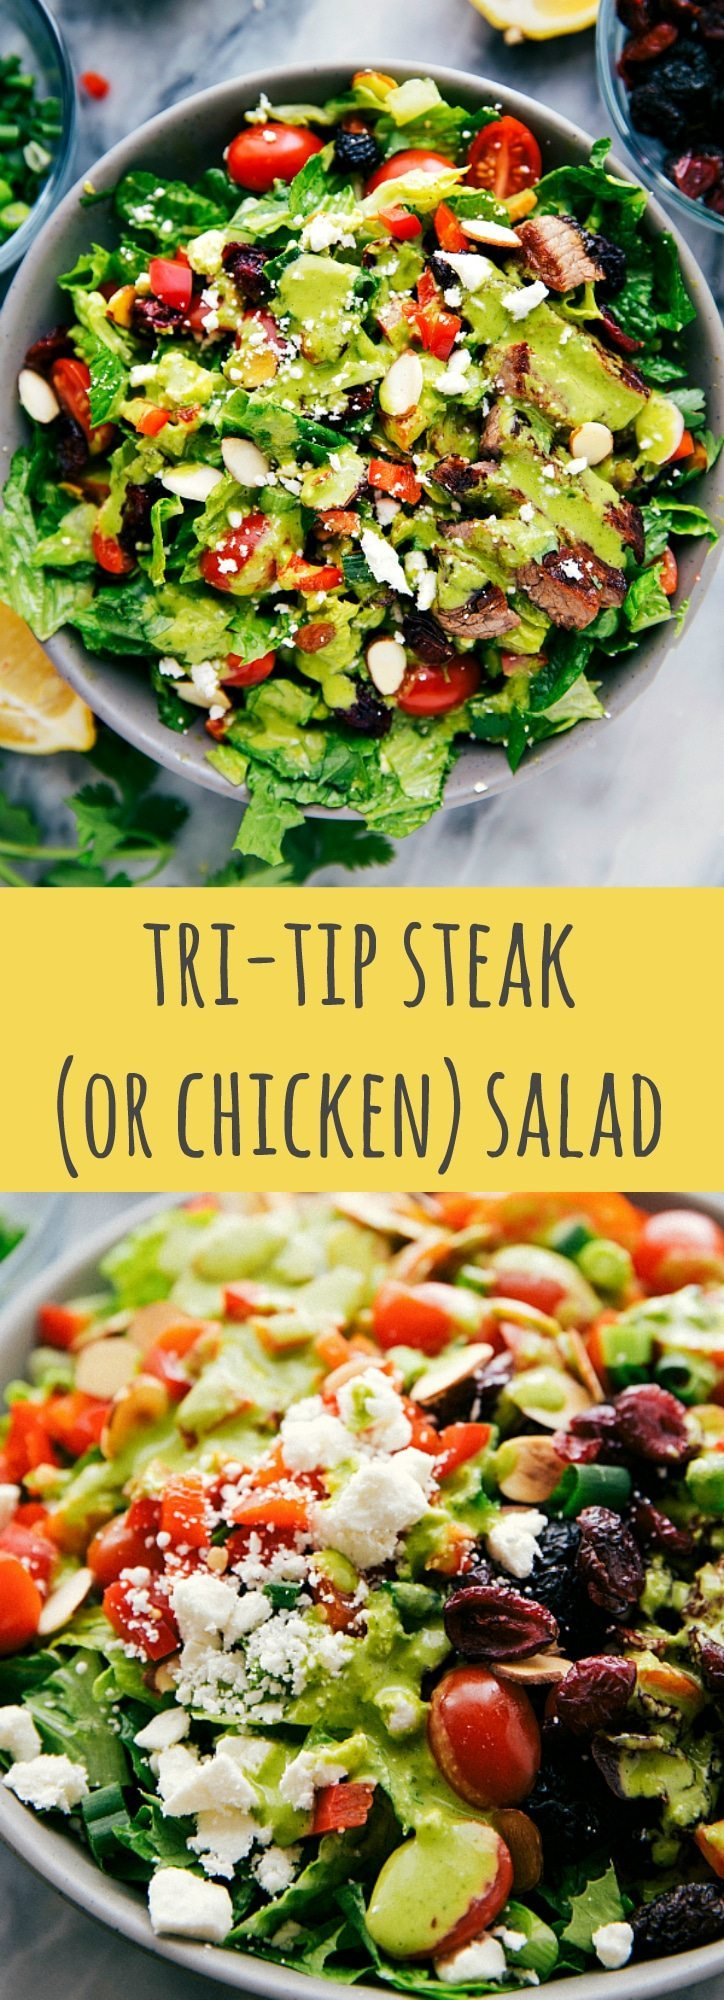 A delicious tri-tip steak OR chicken salad with cherry tomatoes, dried cherries, toasted almonds, red pepper, and a delicious healthy cilantro-avocado dressing.